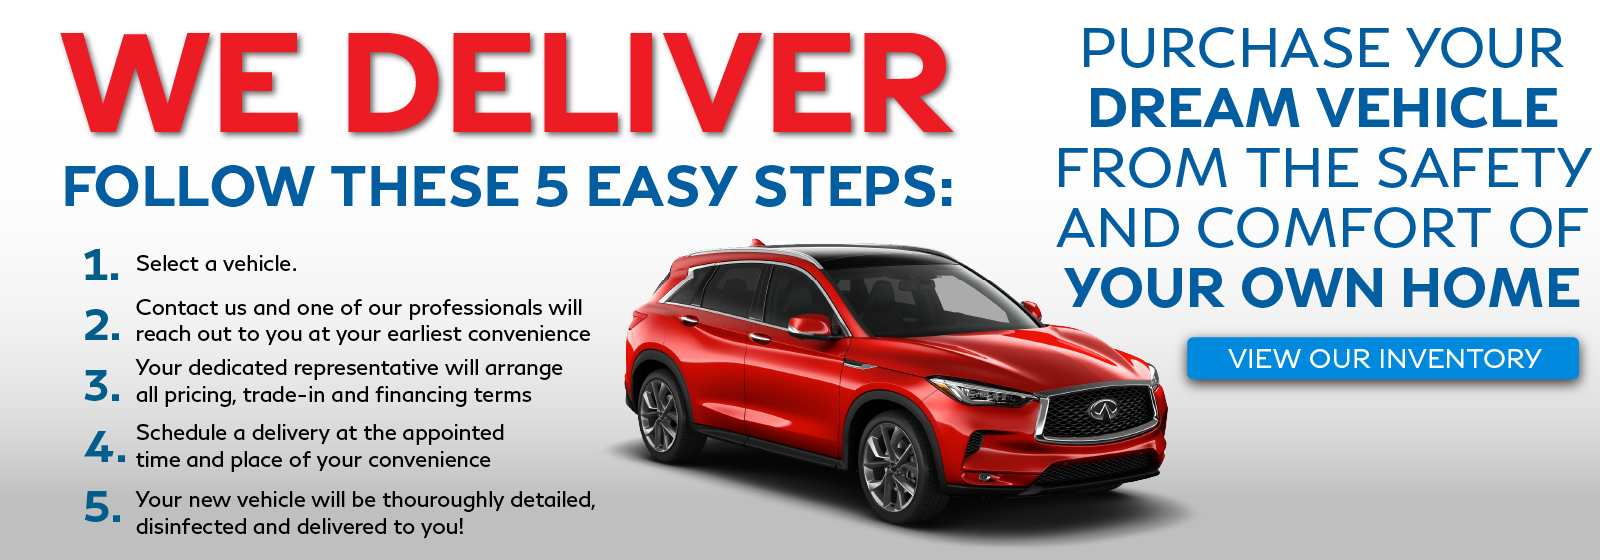 We deliver! Click to view our inventory.